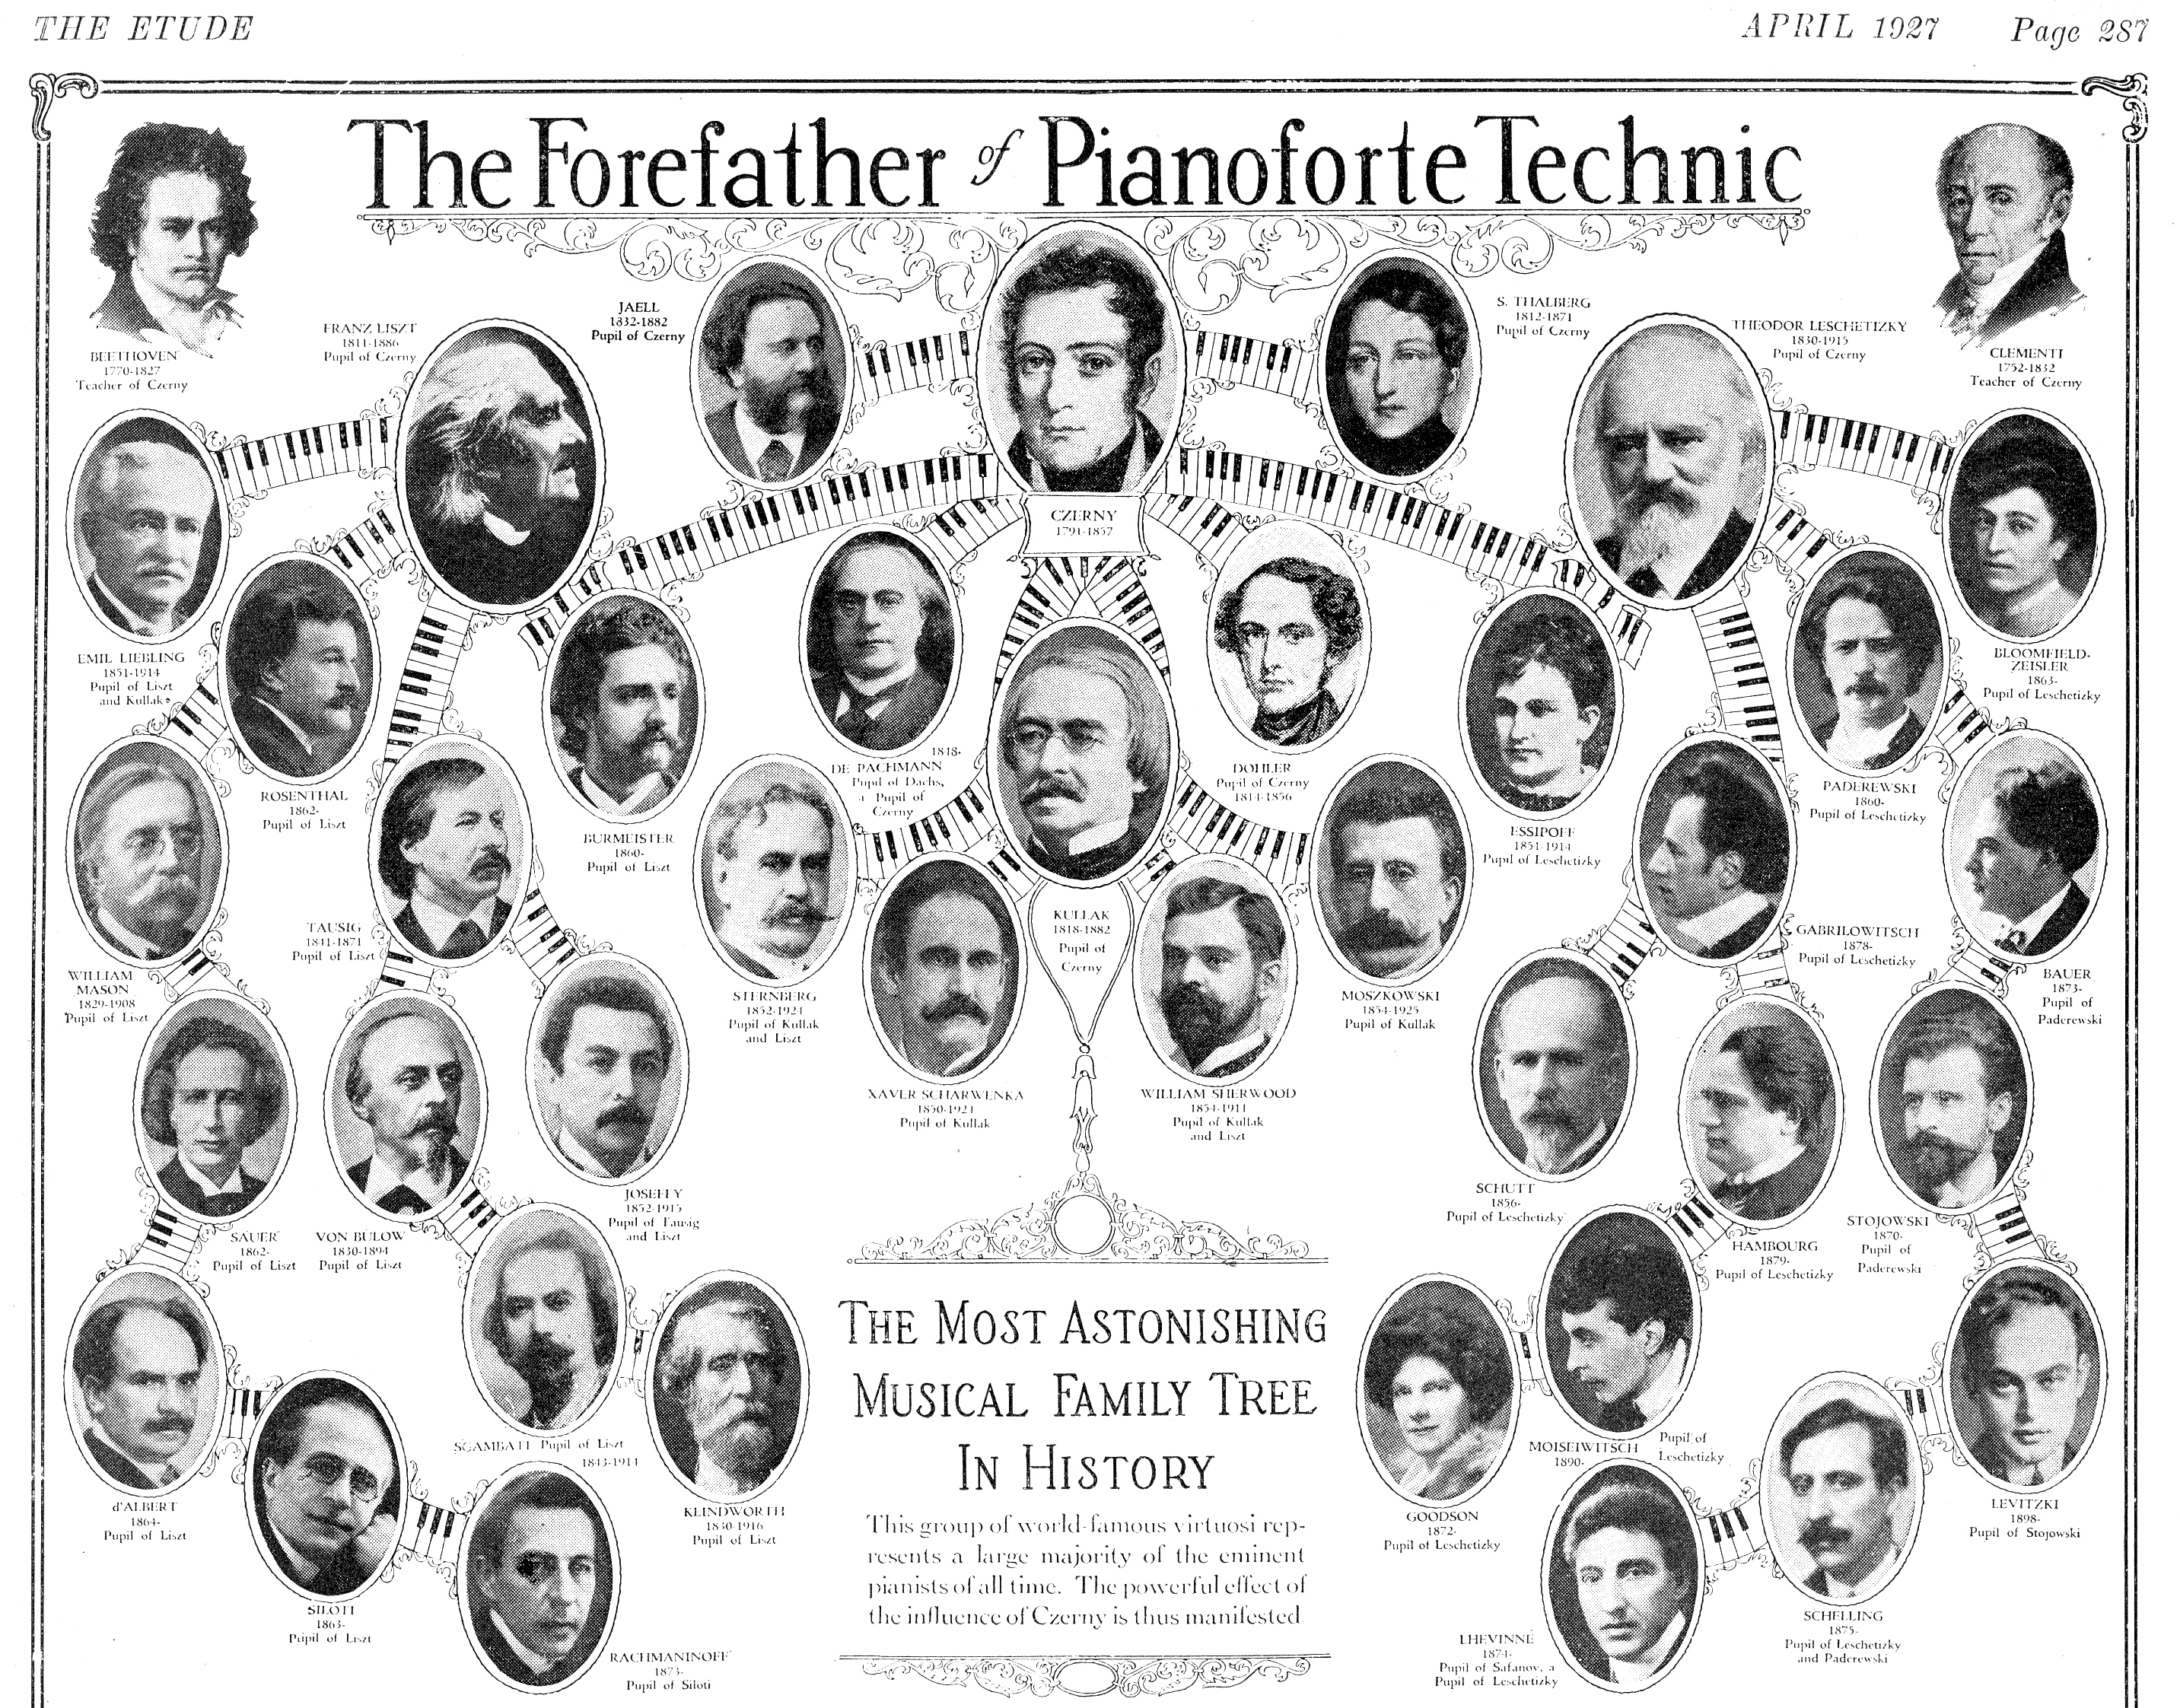 Czerny is in the center top of this image.  He influenced many!